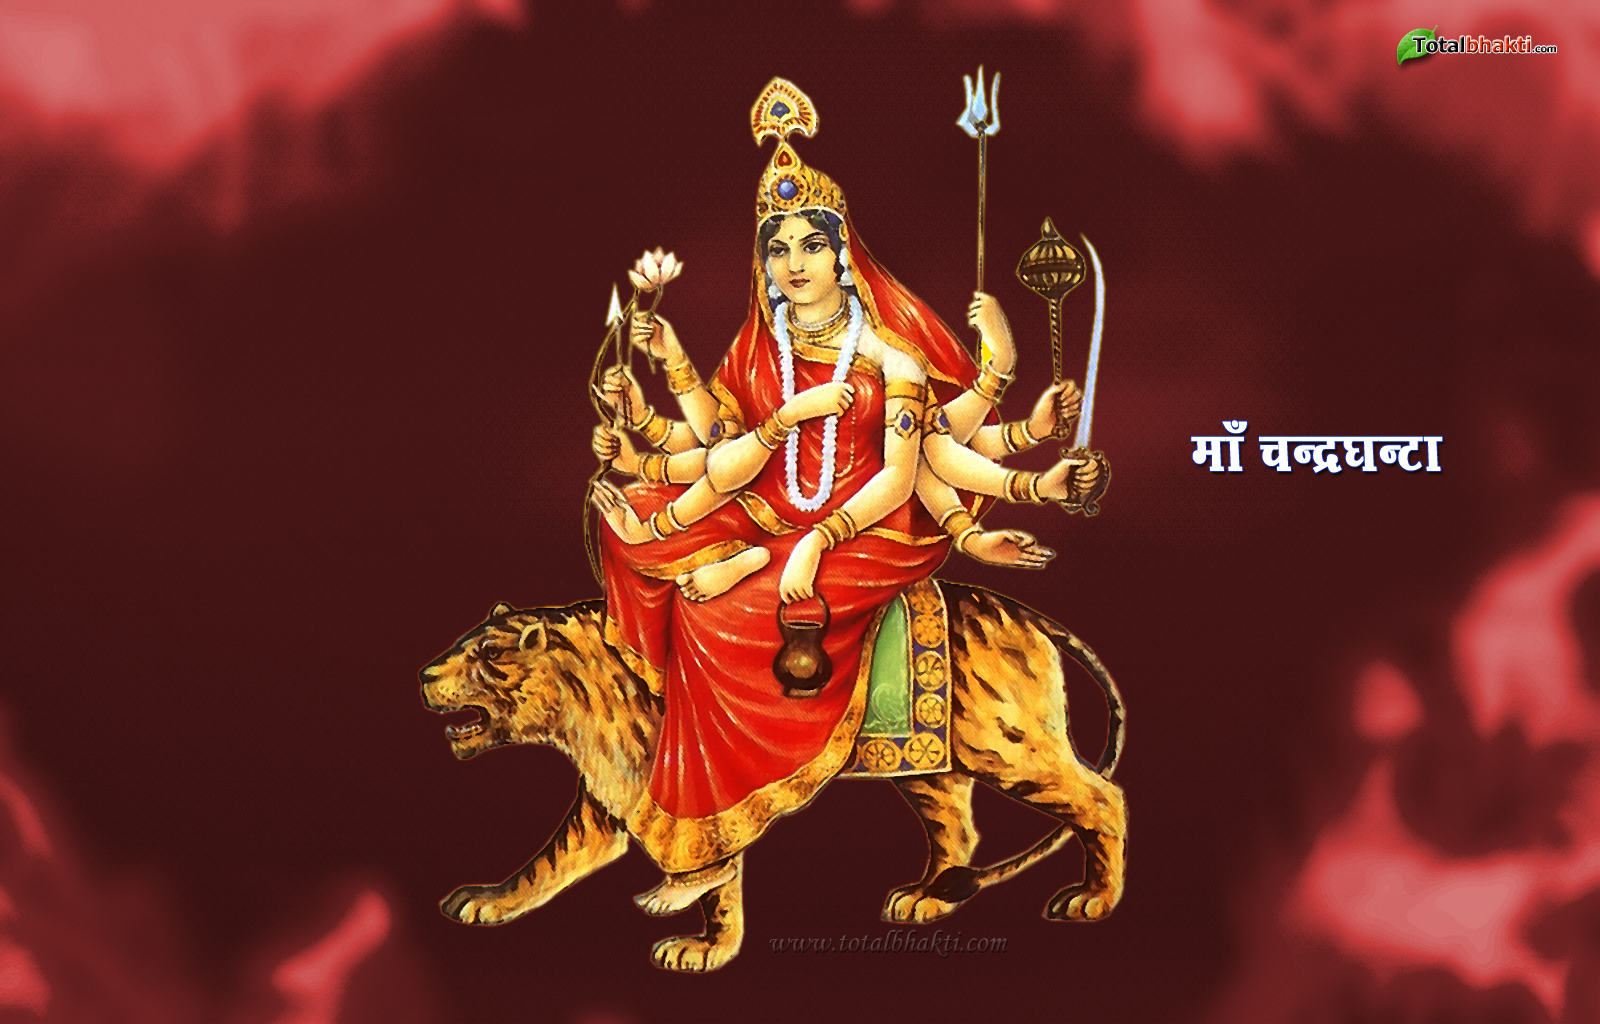 HD Mata Chandraghanta Wallpapers (High Quality)